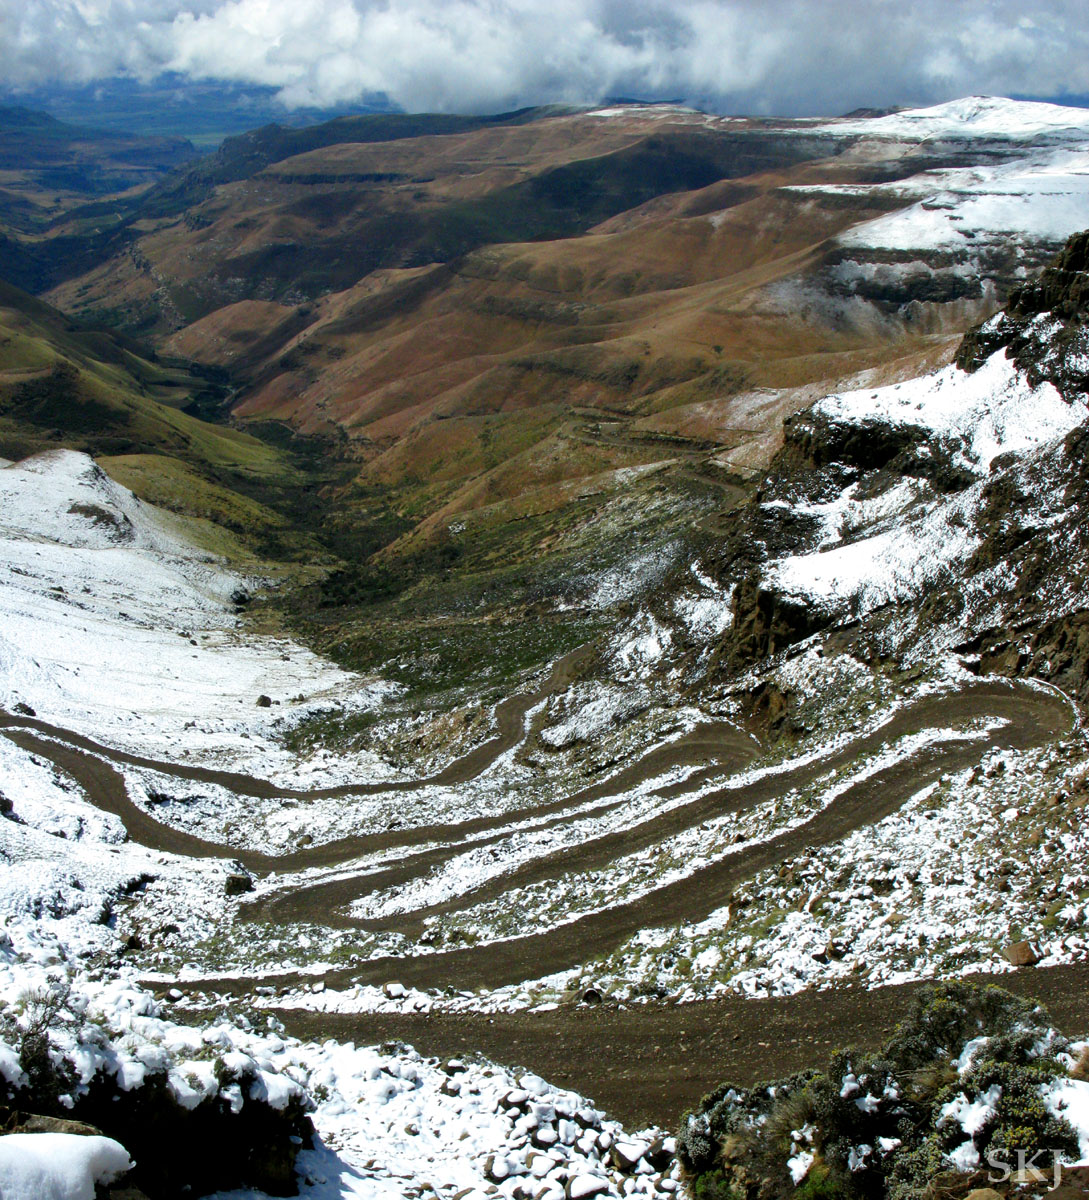 Very twisty road from the top of Sani Pass after a snowstorm, Lesotho.